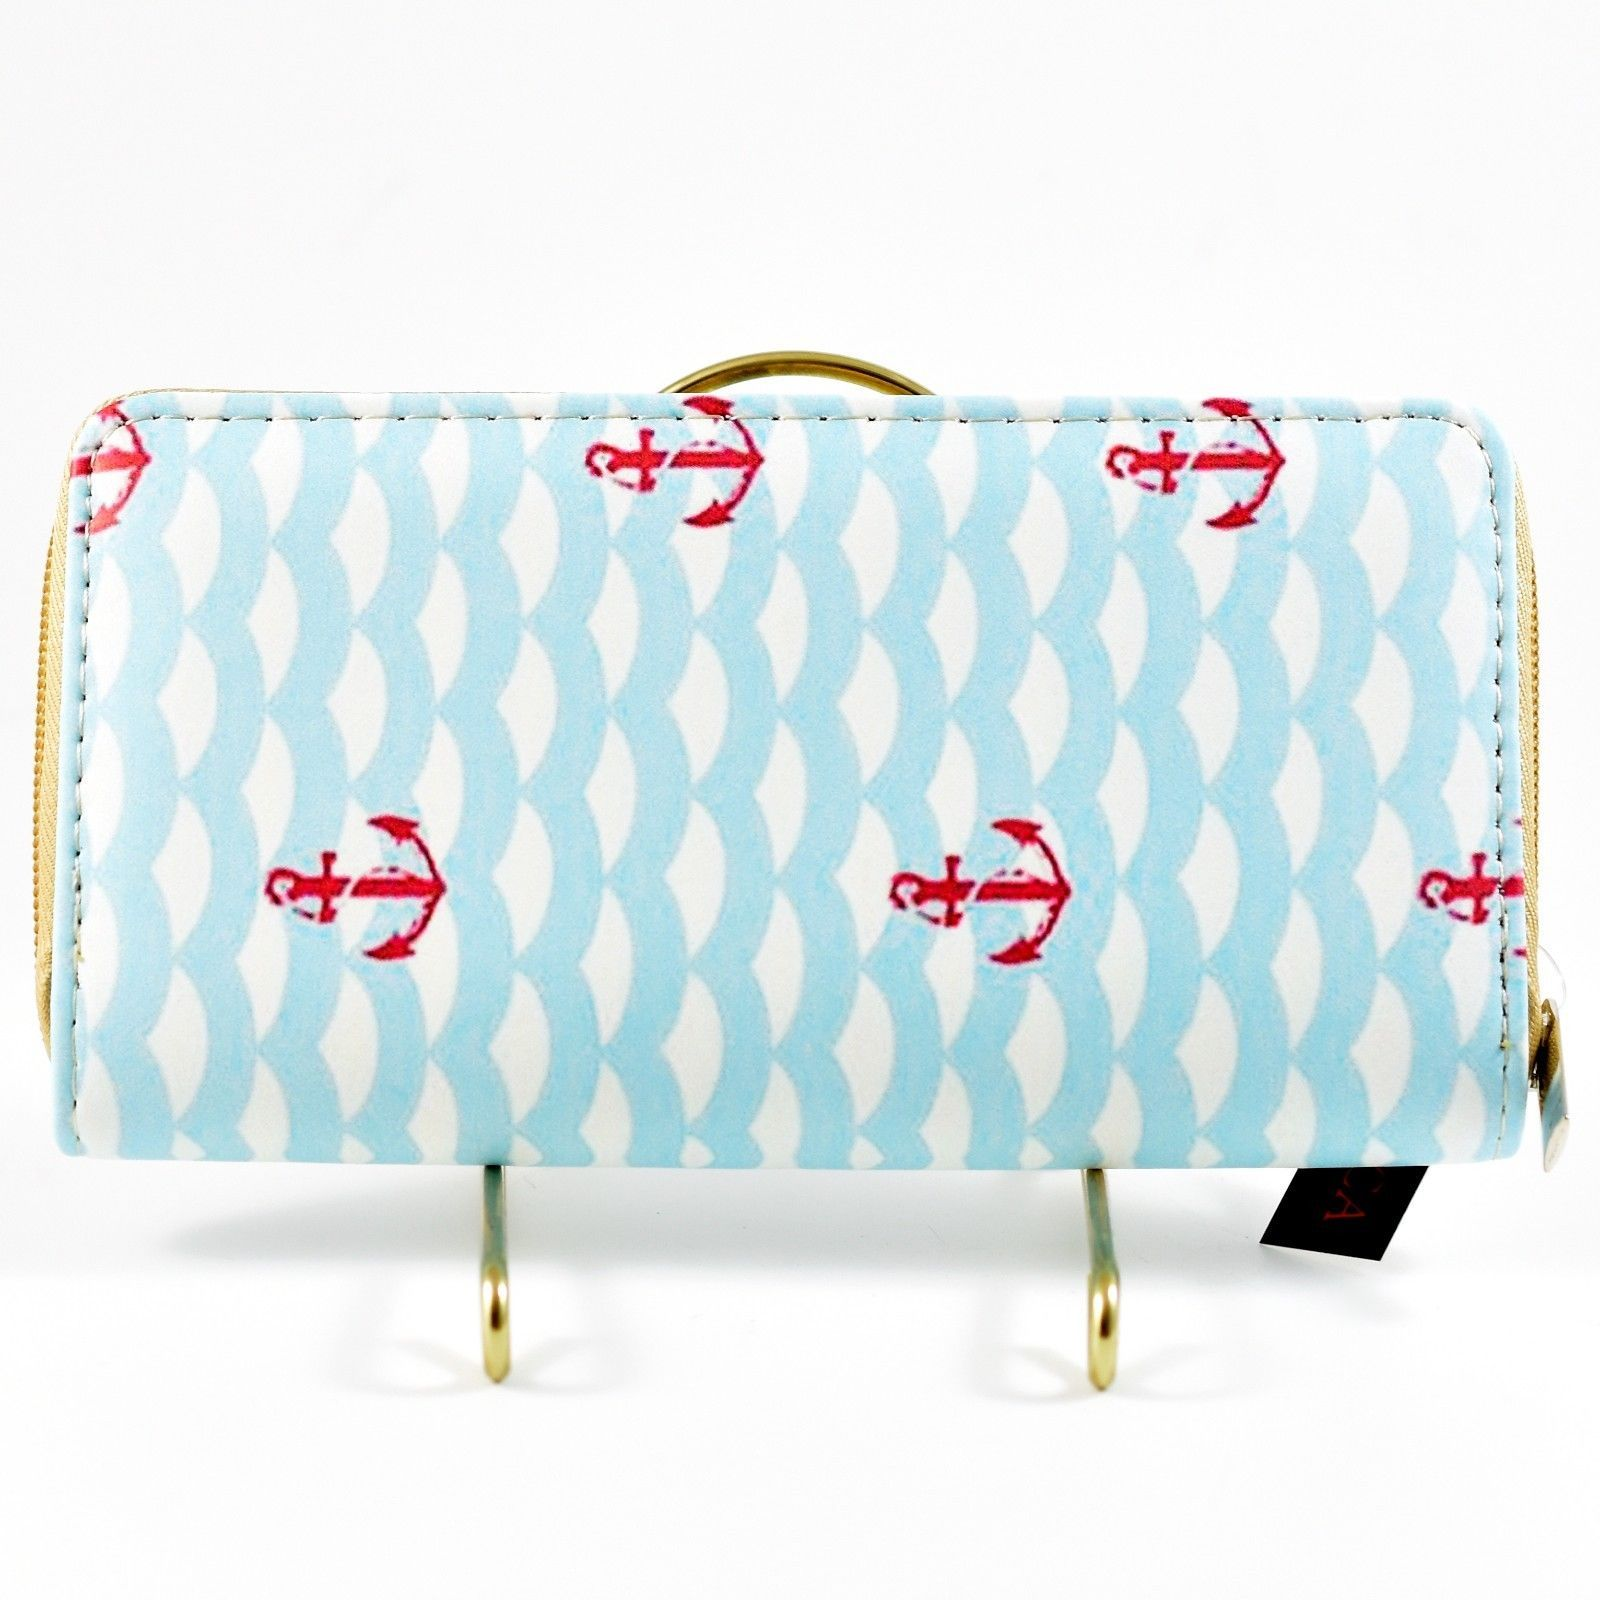 Bijorca Anchor Point Ocean Nautical Clutch Wallet New w Tags